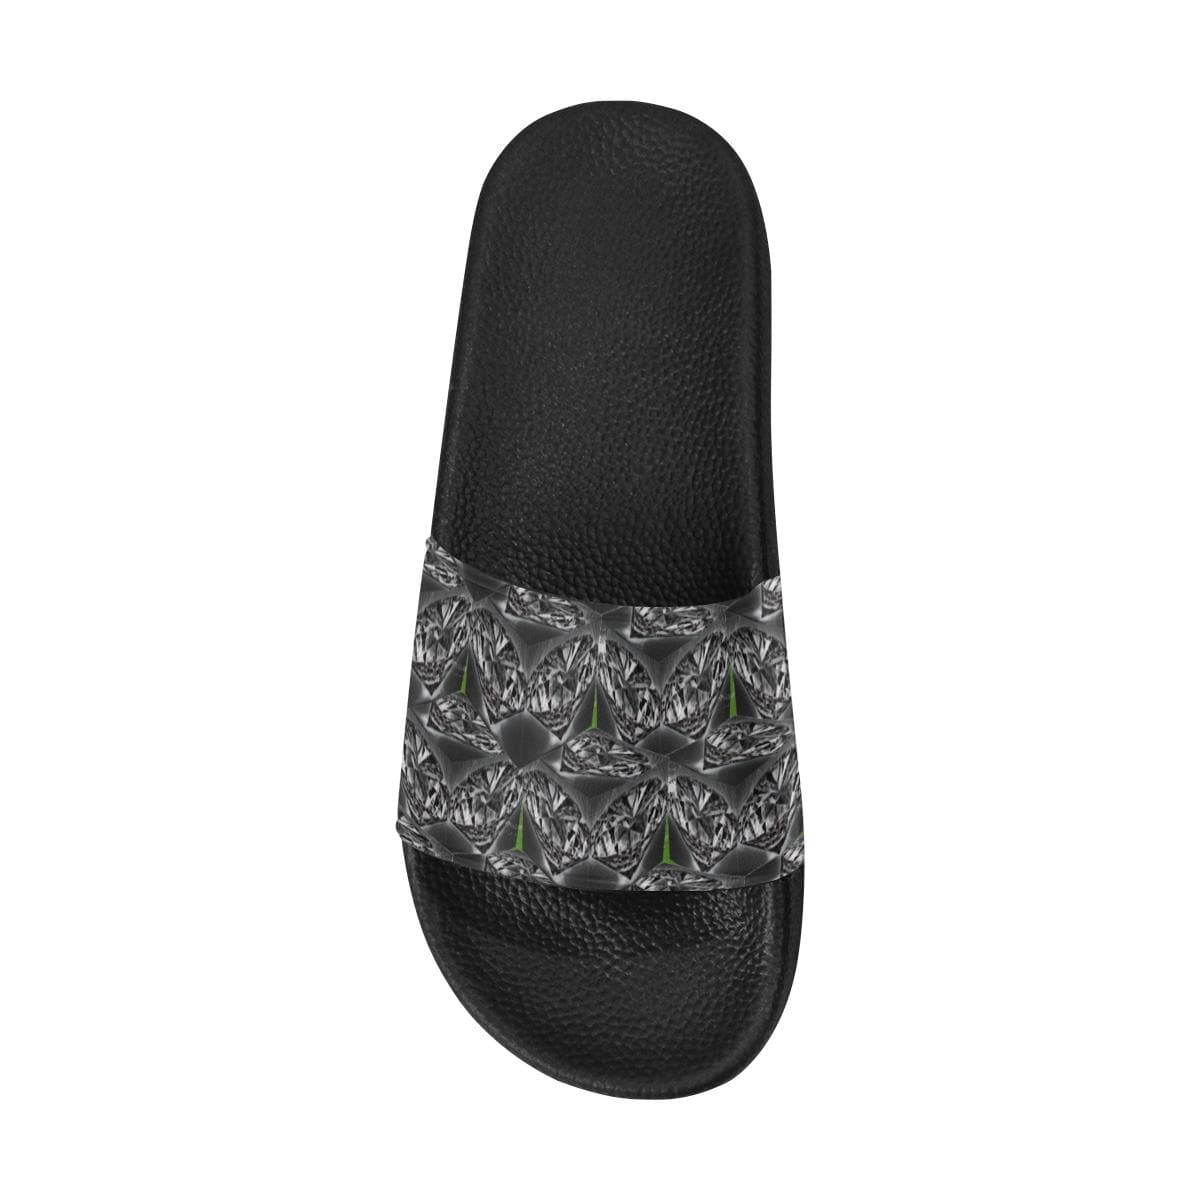 Black Ice Men's Slide Sandals - Tie-Fly